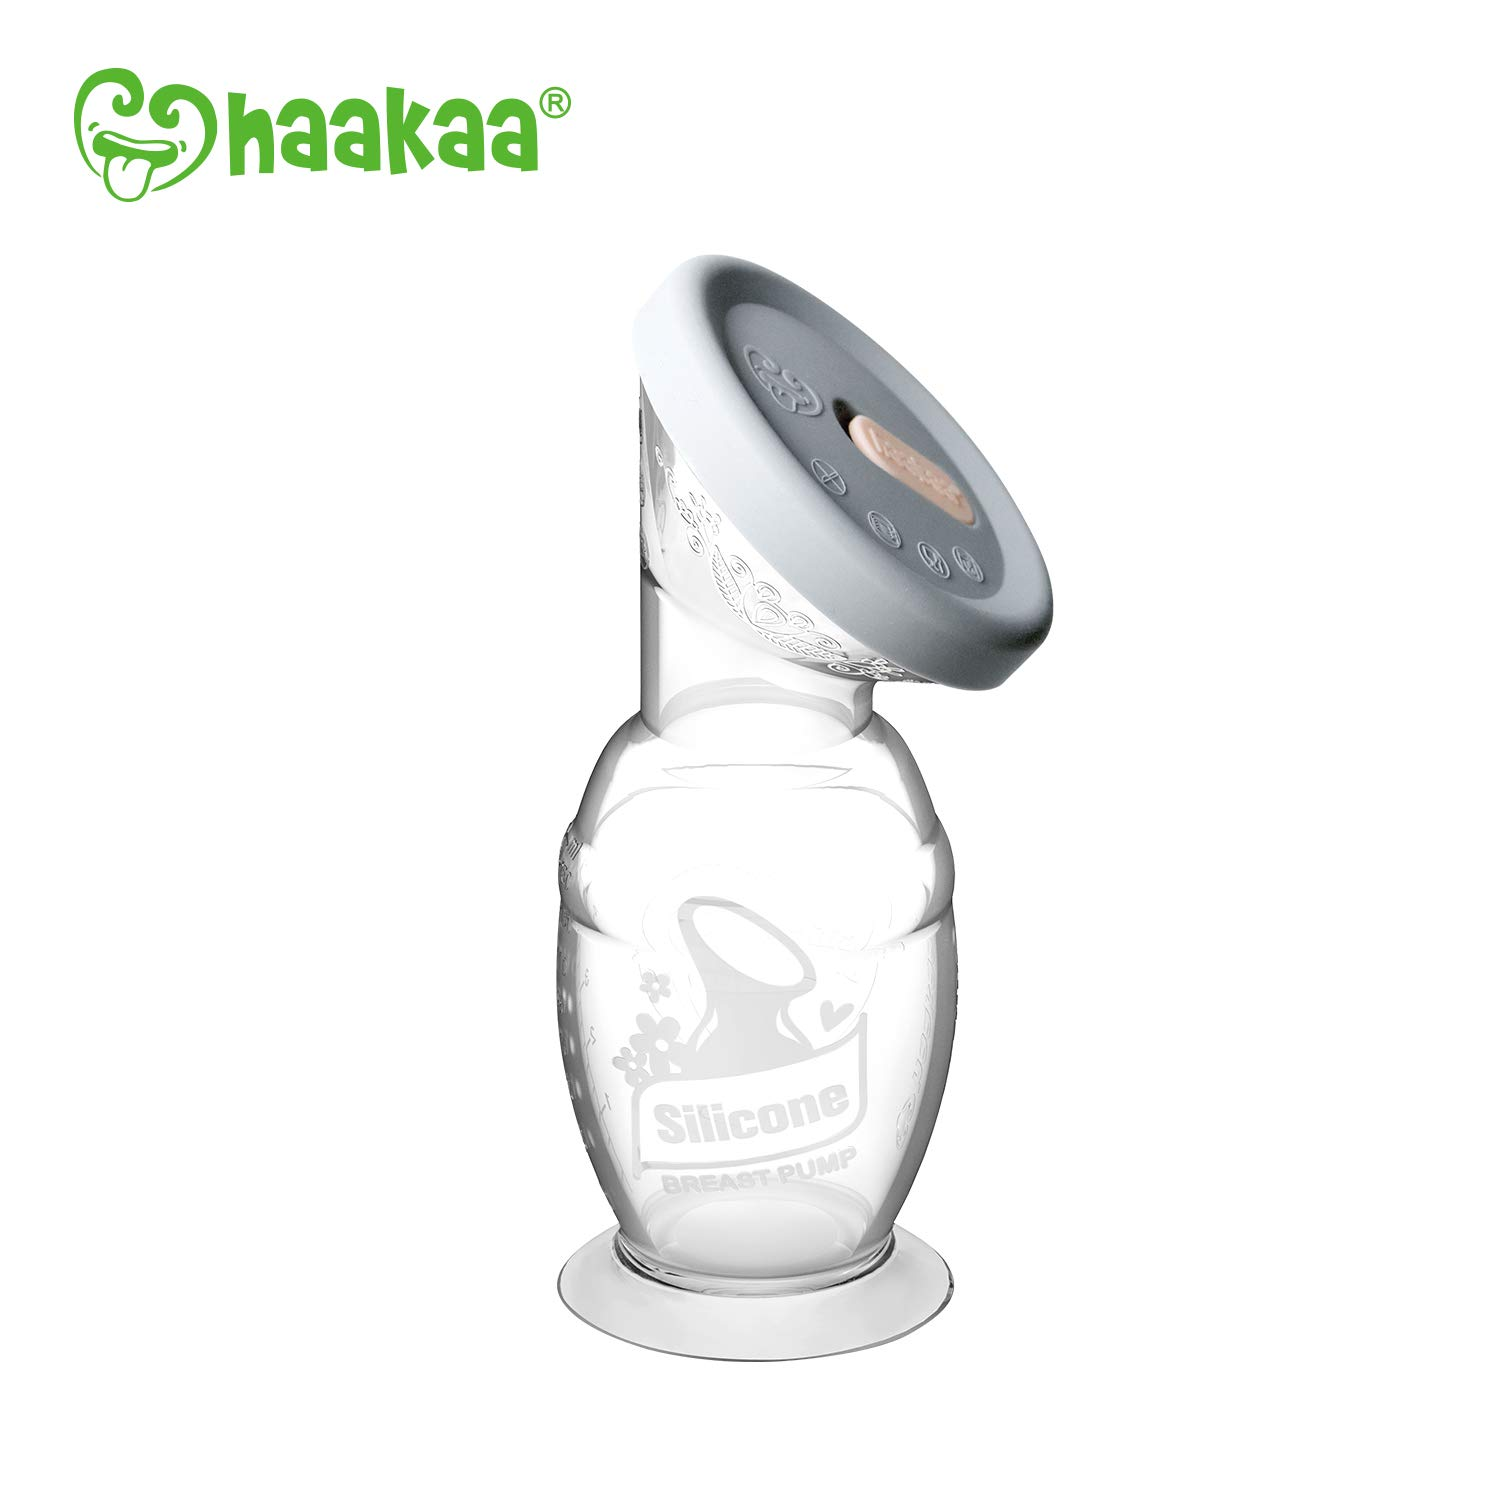 Haakaa Gen 2 Silicone Breast Pump with Suction Base and Leak-Proof Silicone Cap, 4 oz/100 ml, BPA PVC and Phthalate Free by haakaa